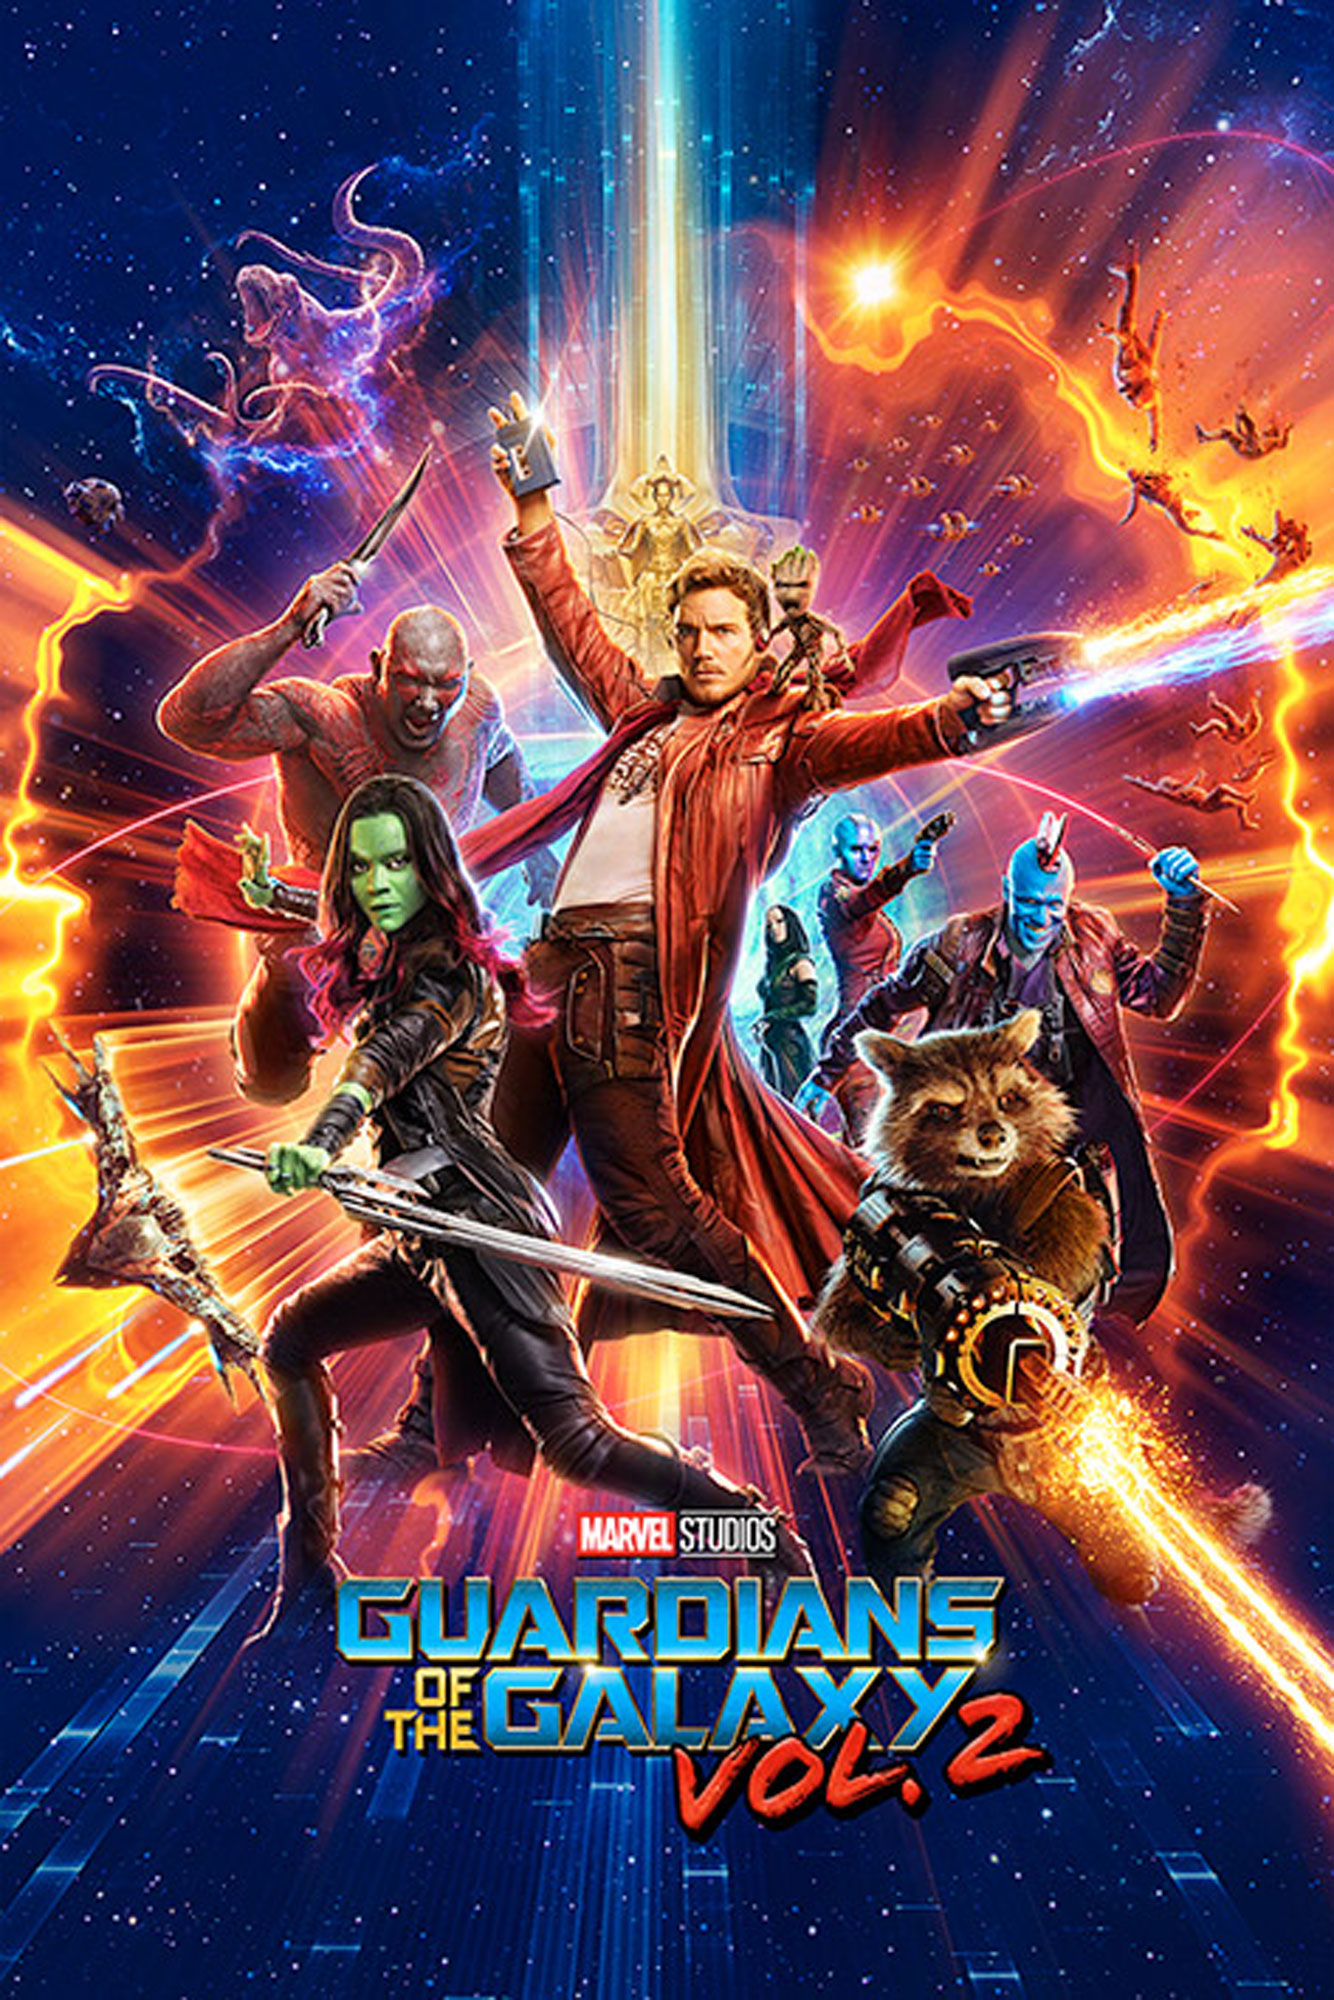 Guardians of the Galaxy - Poster - Vol. 2 - One Sheet